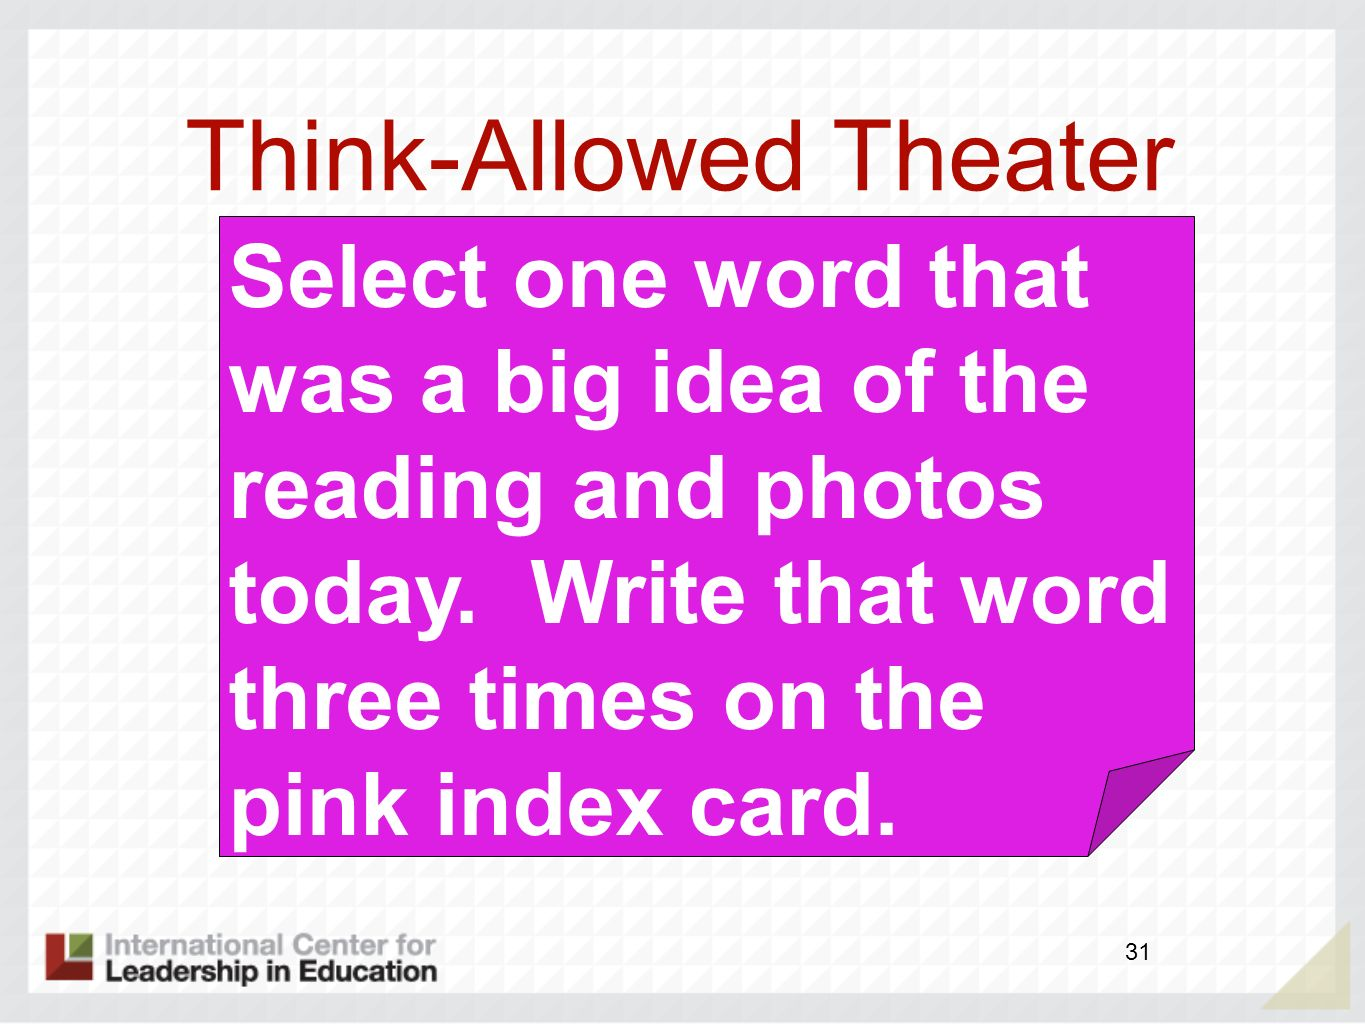 Think-Allowed Theater